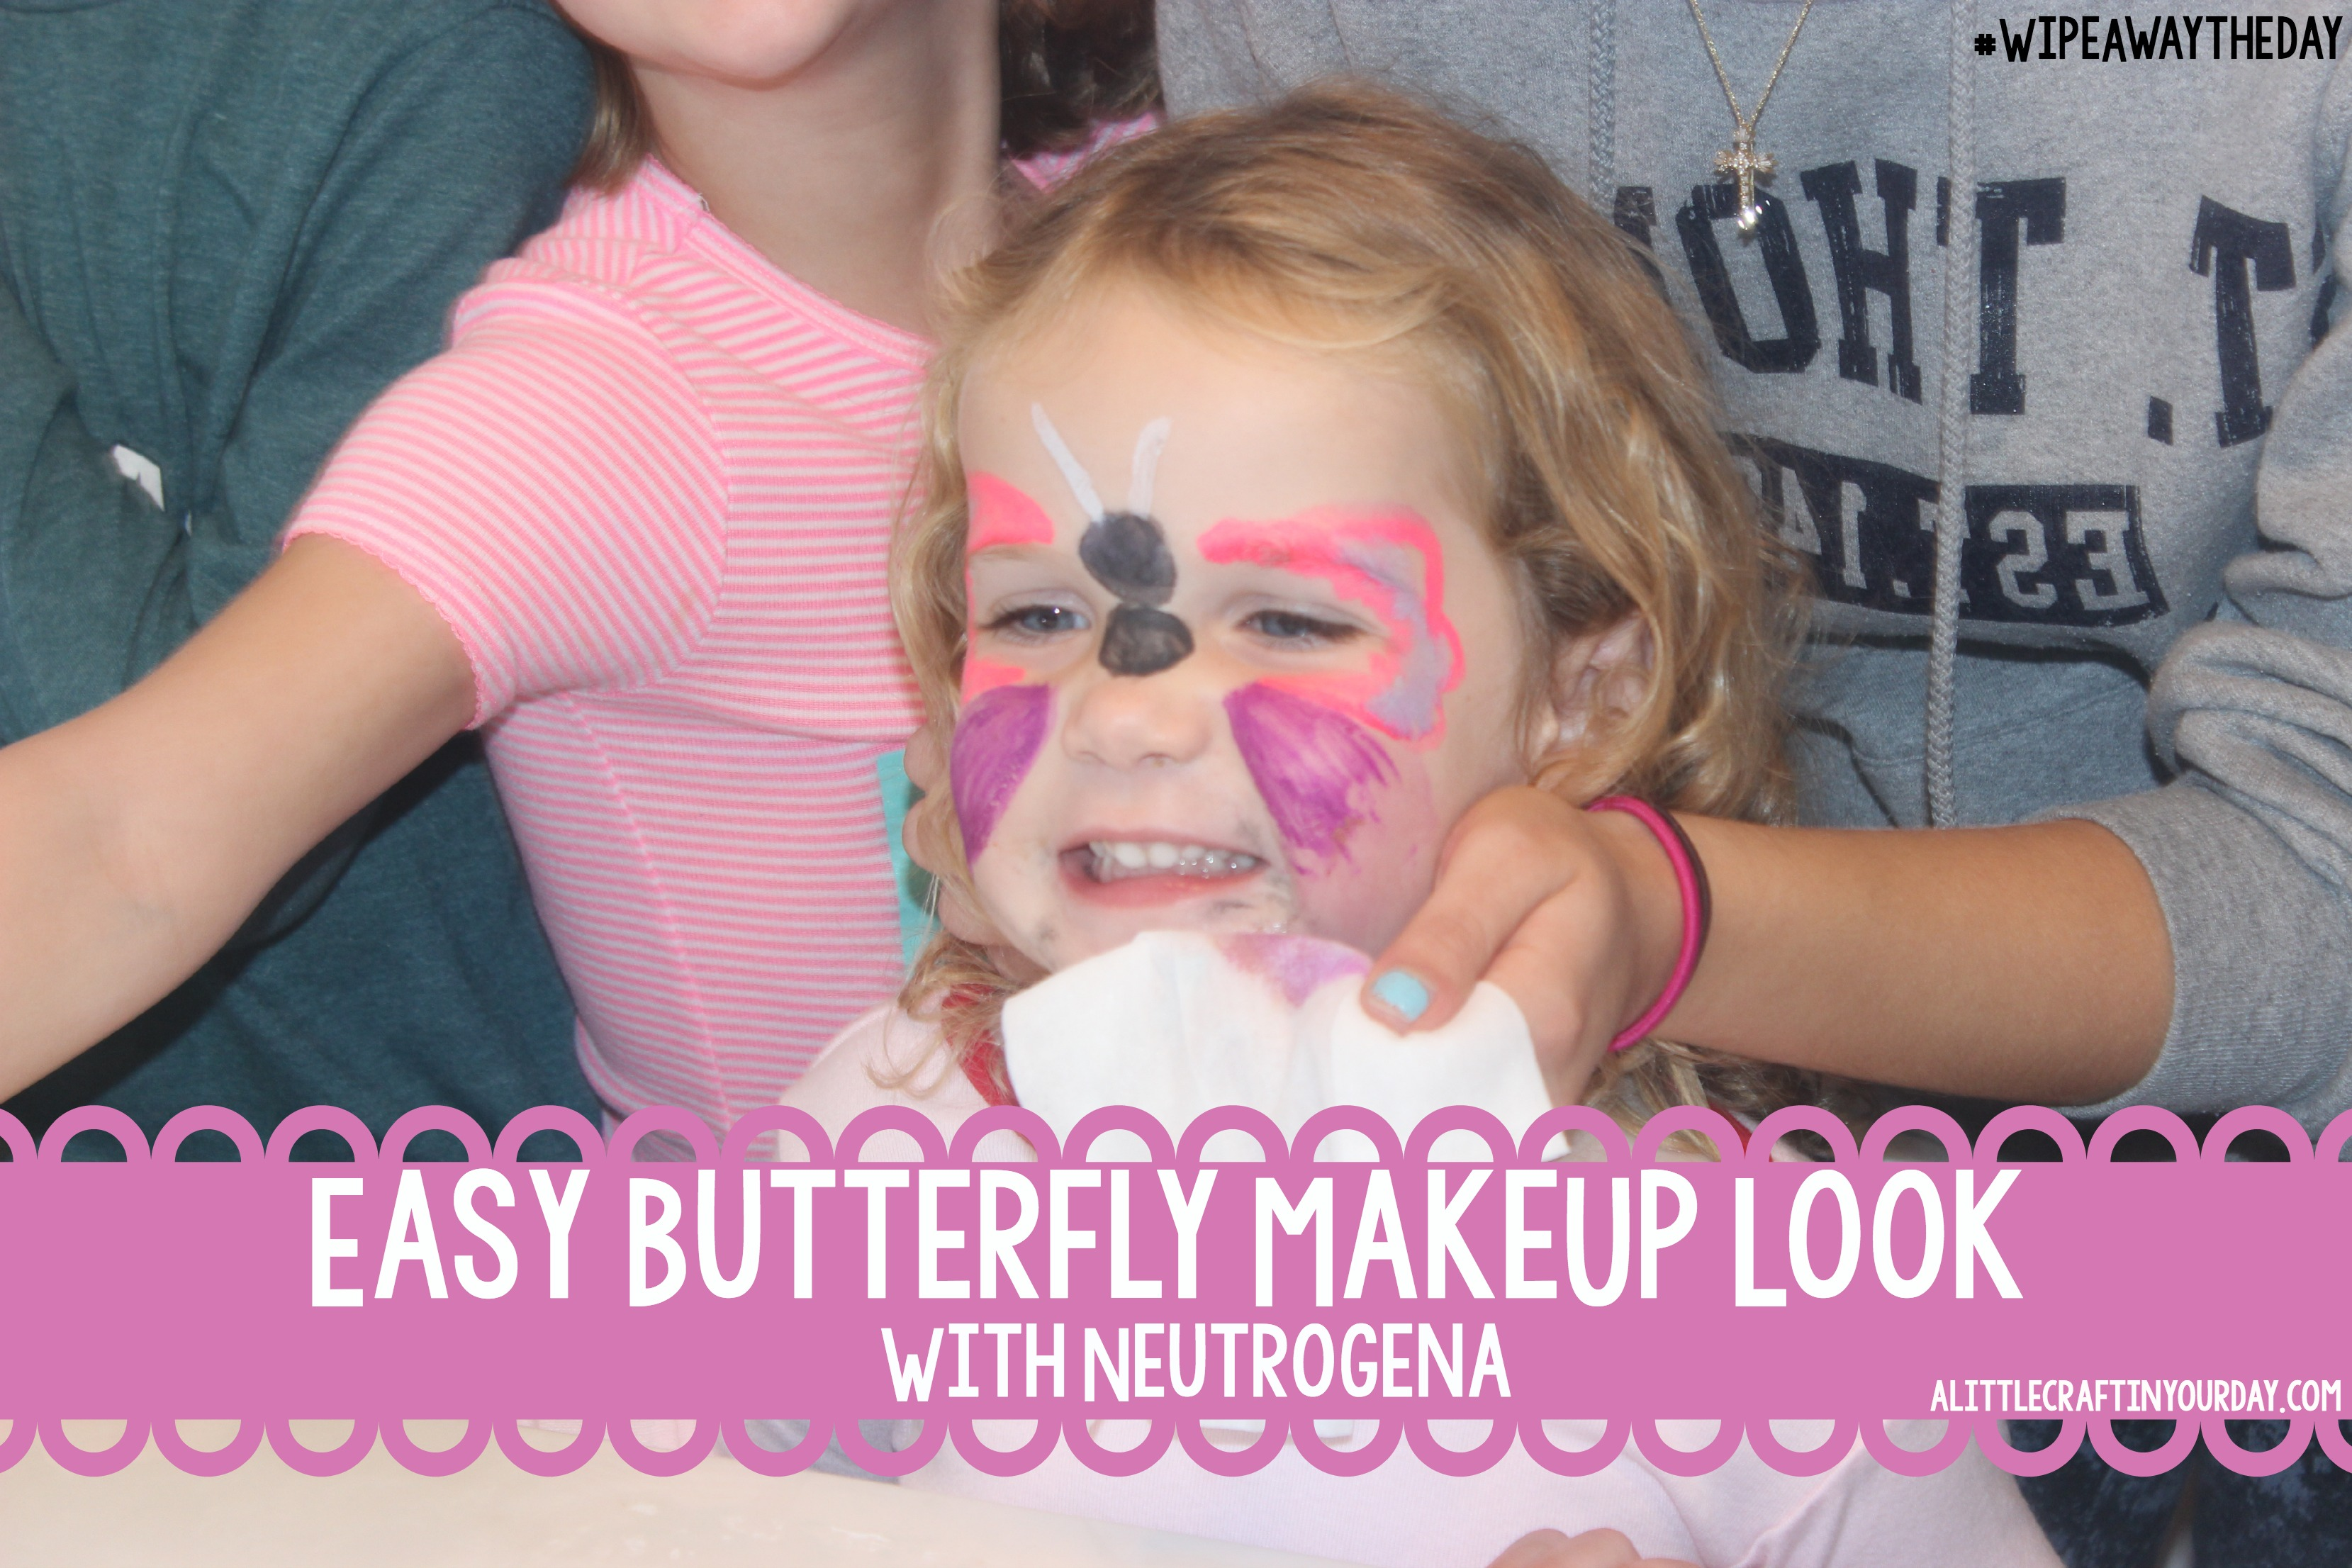 Easy Butterfly MakeUp Look with Neutrogena - A Little Craft In Your Day